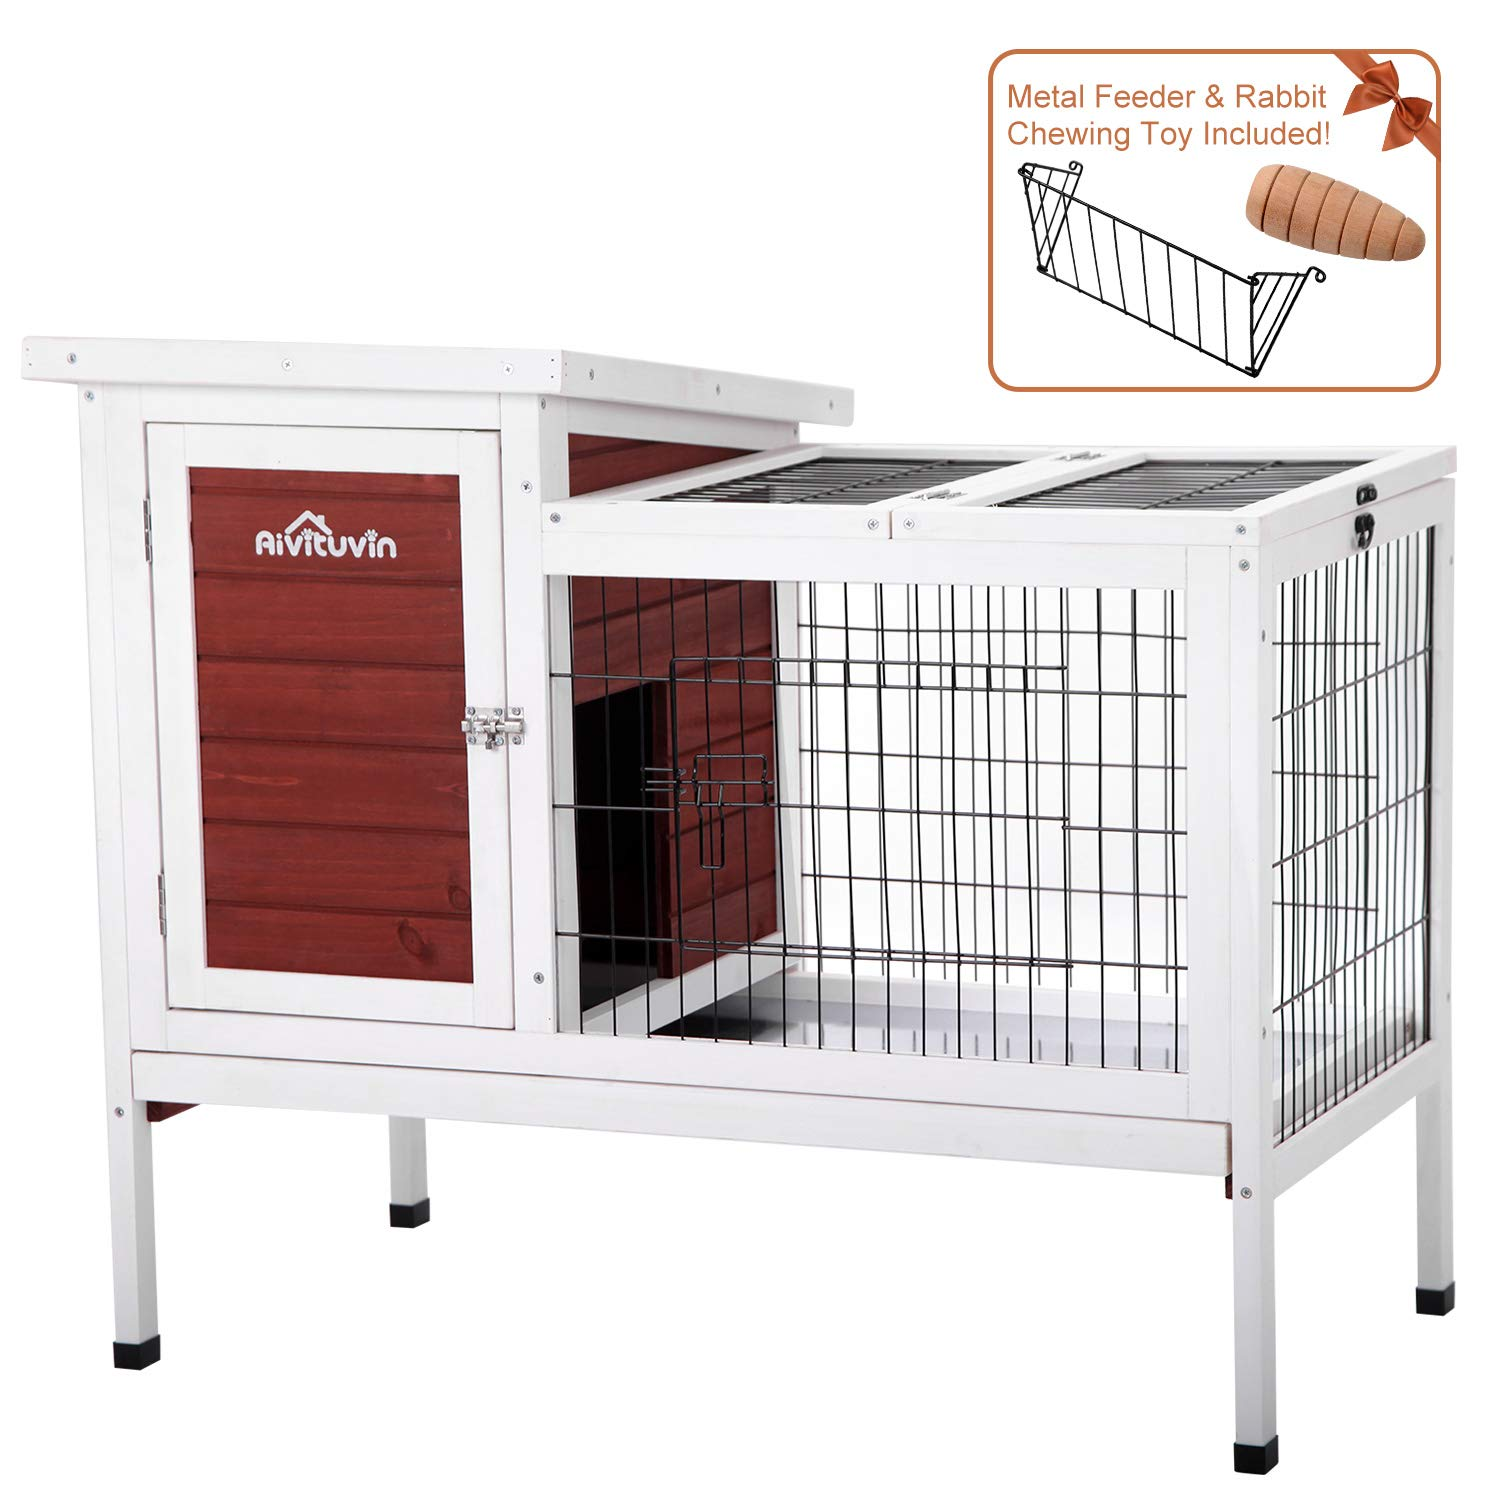 Aivituvin Rabbit Cage, Rabbit Hutch, Indoor Guinea Pig Cage, 2- Story Bunny Cages for Small Animals,Chicken Coop with Metal Feeder & Chew Toy ... (Aubur, Rabbit Hutch #07)